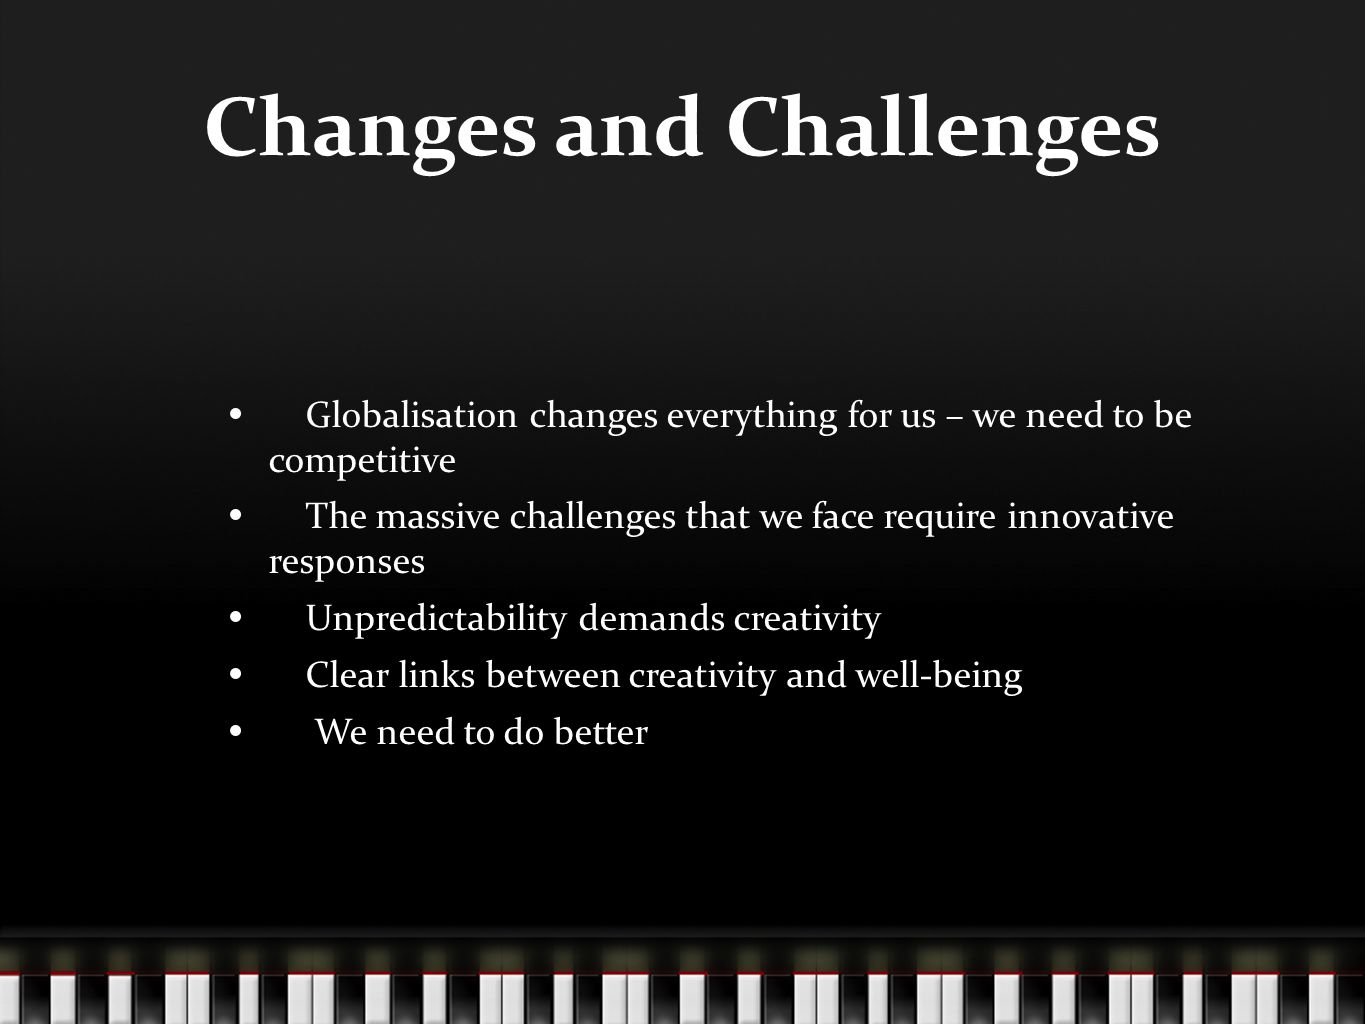 Changes and Challenges Globalisation changes everything for us – we need to be competitive The massive challenges that we face require innovative responses Unpredictability demands creativity Clear links between creativity and well-being We need to do better